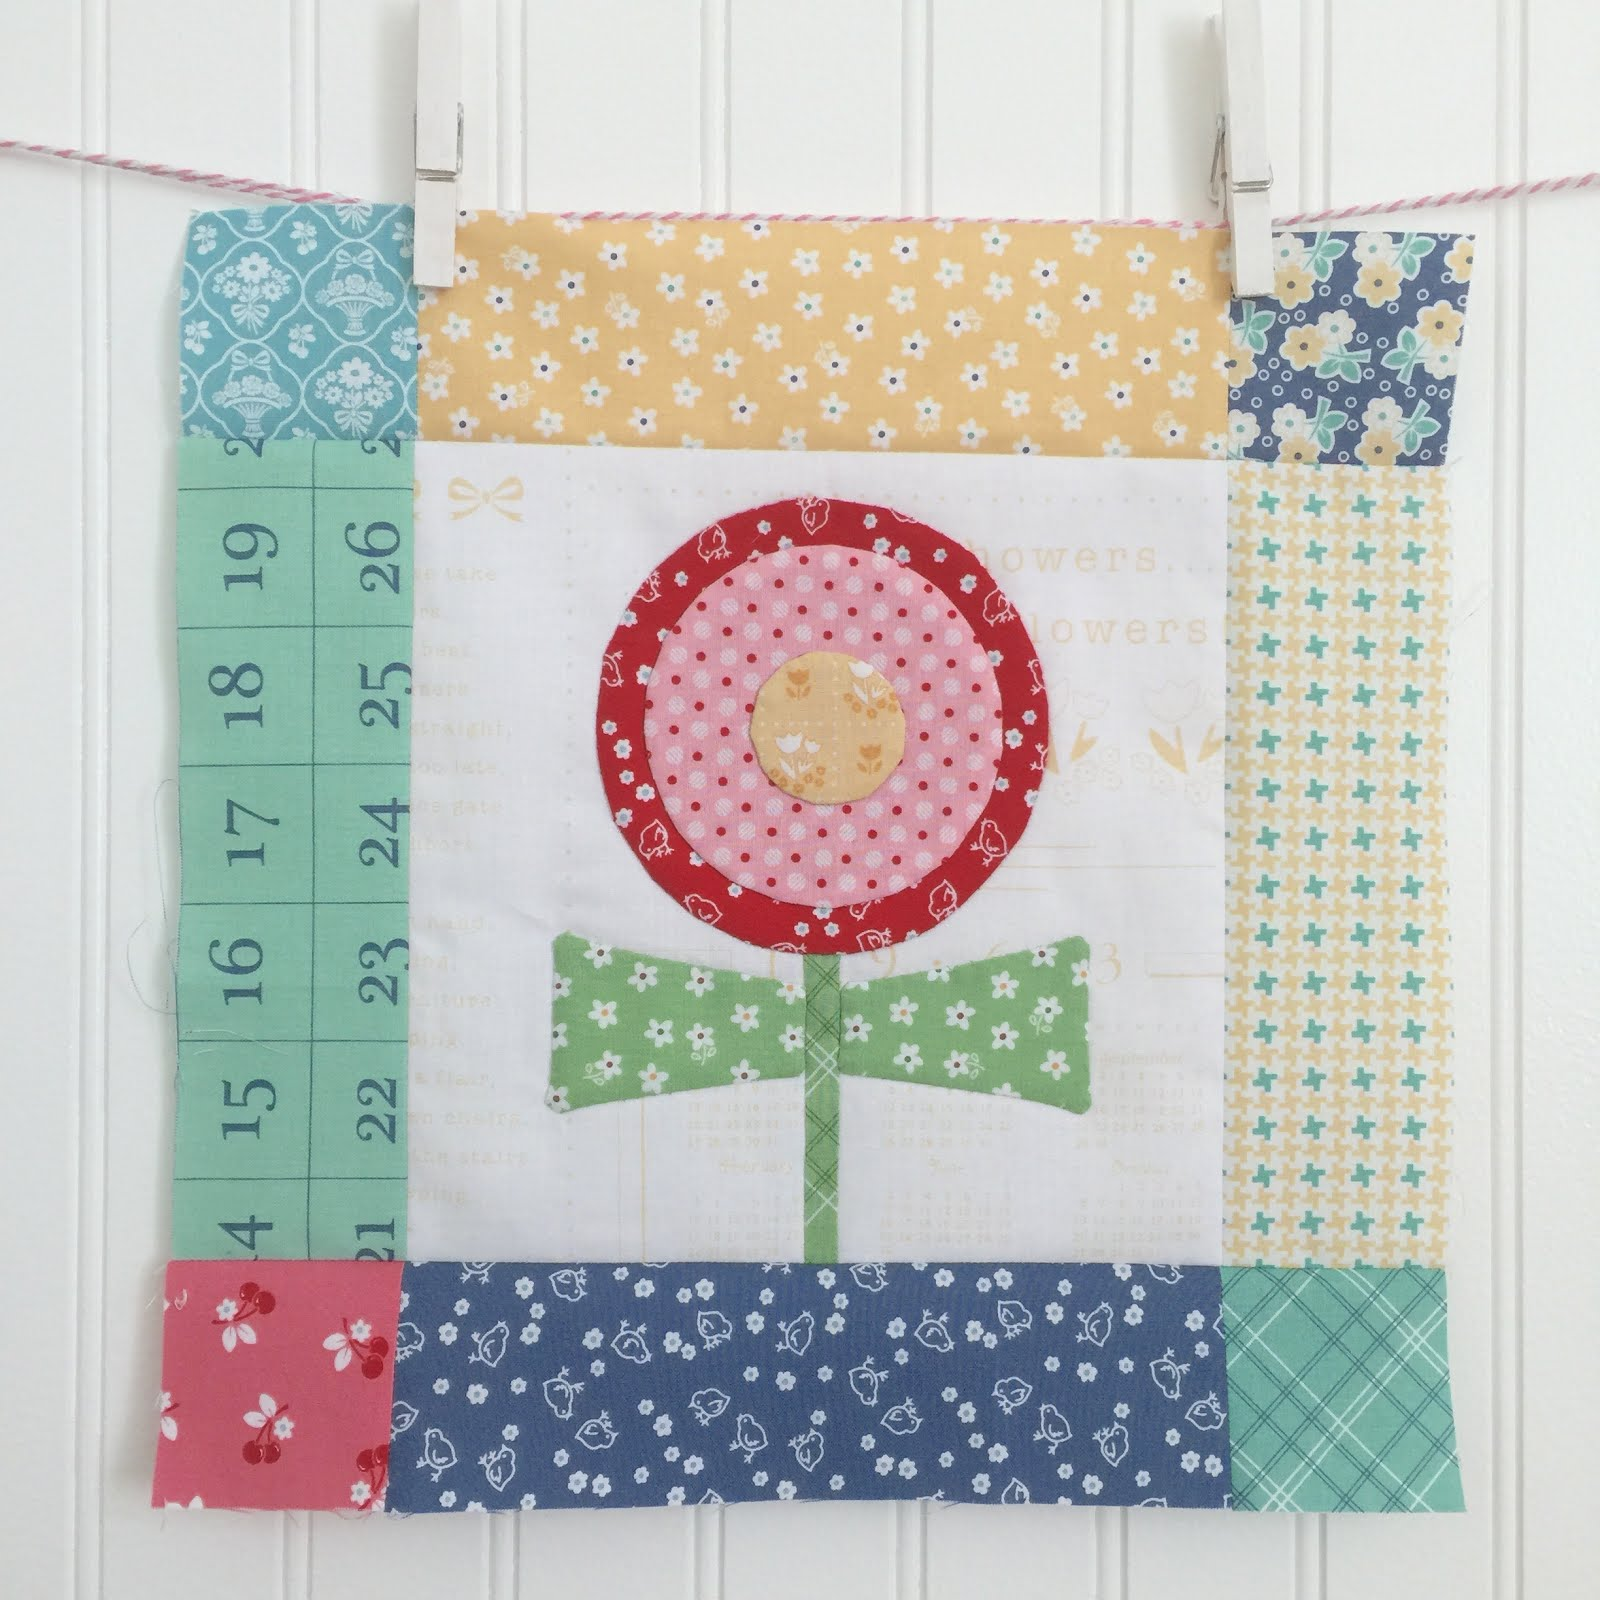 BLOOM Sew Along! 14